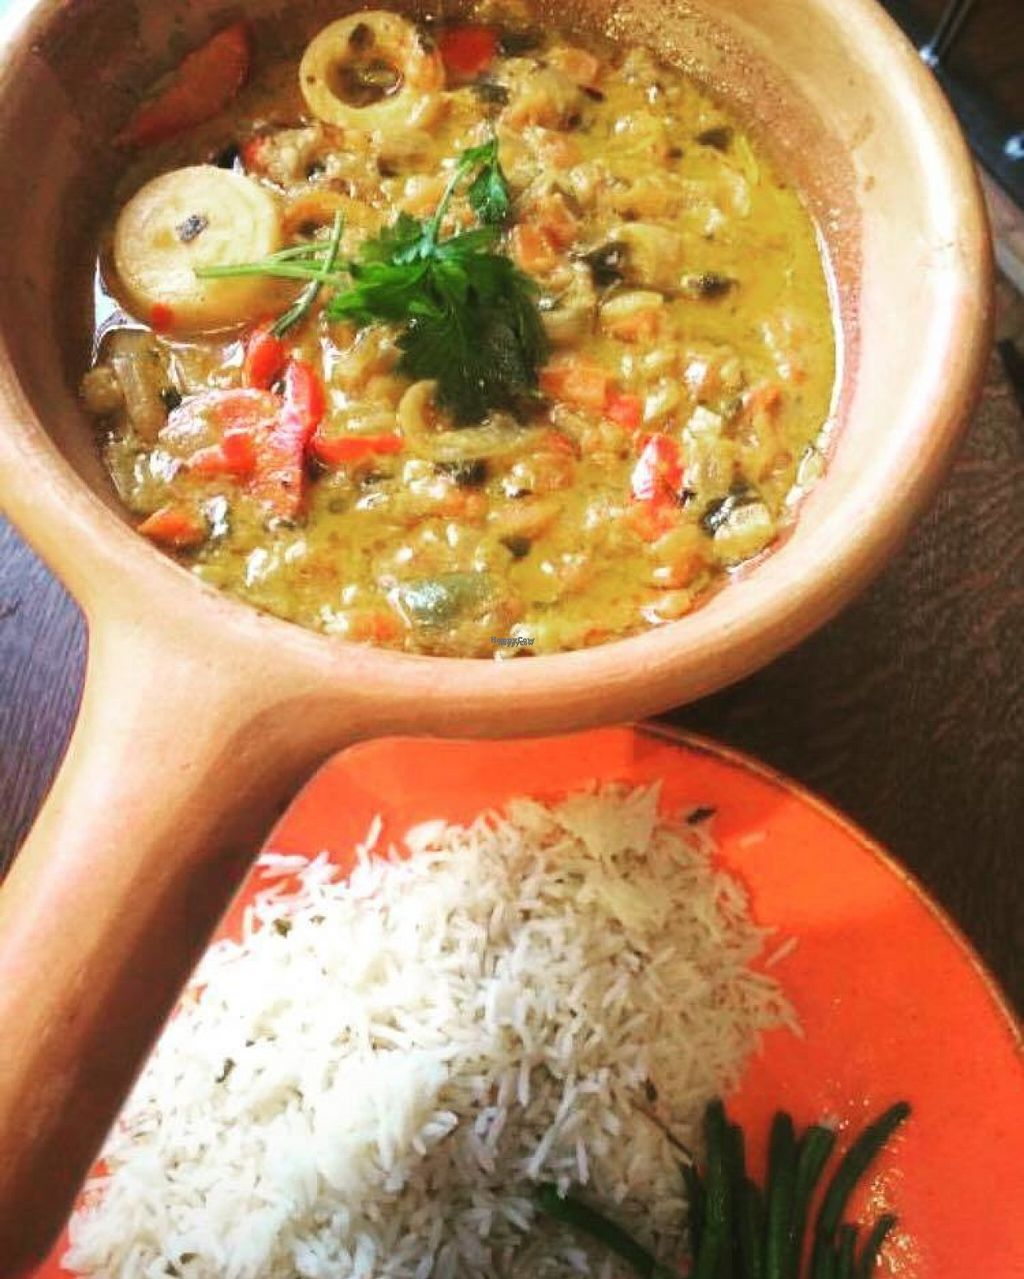 """Photo of Las Iguanas  by <a href=""""/members/profile/Meaks"""">Meaks</a> <br/>Moqueca de Palmitos <br/> August 3, 2016  - <a href='/contact/abuse/image/77920/165151'>Report</a>"""